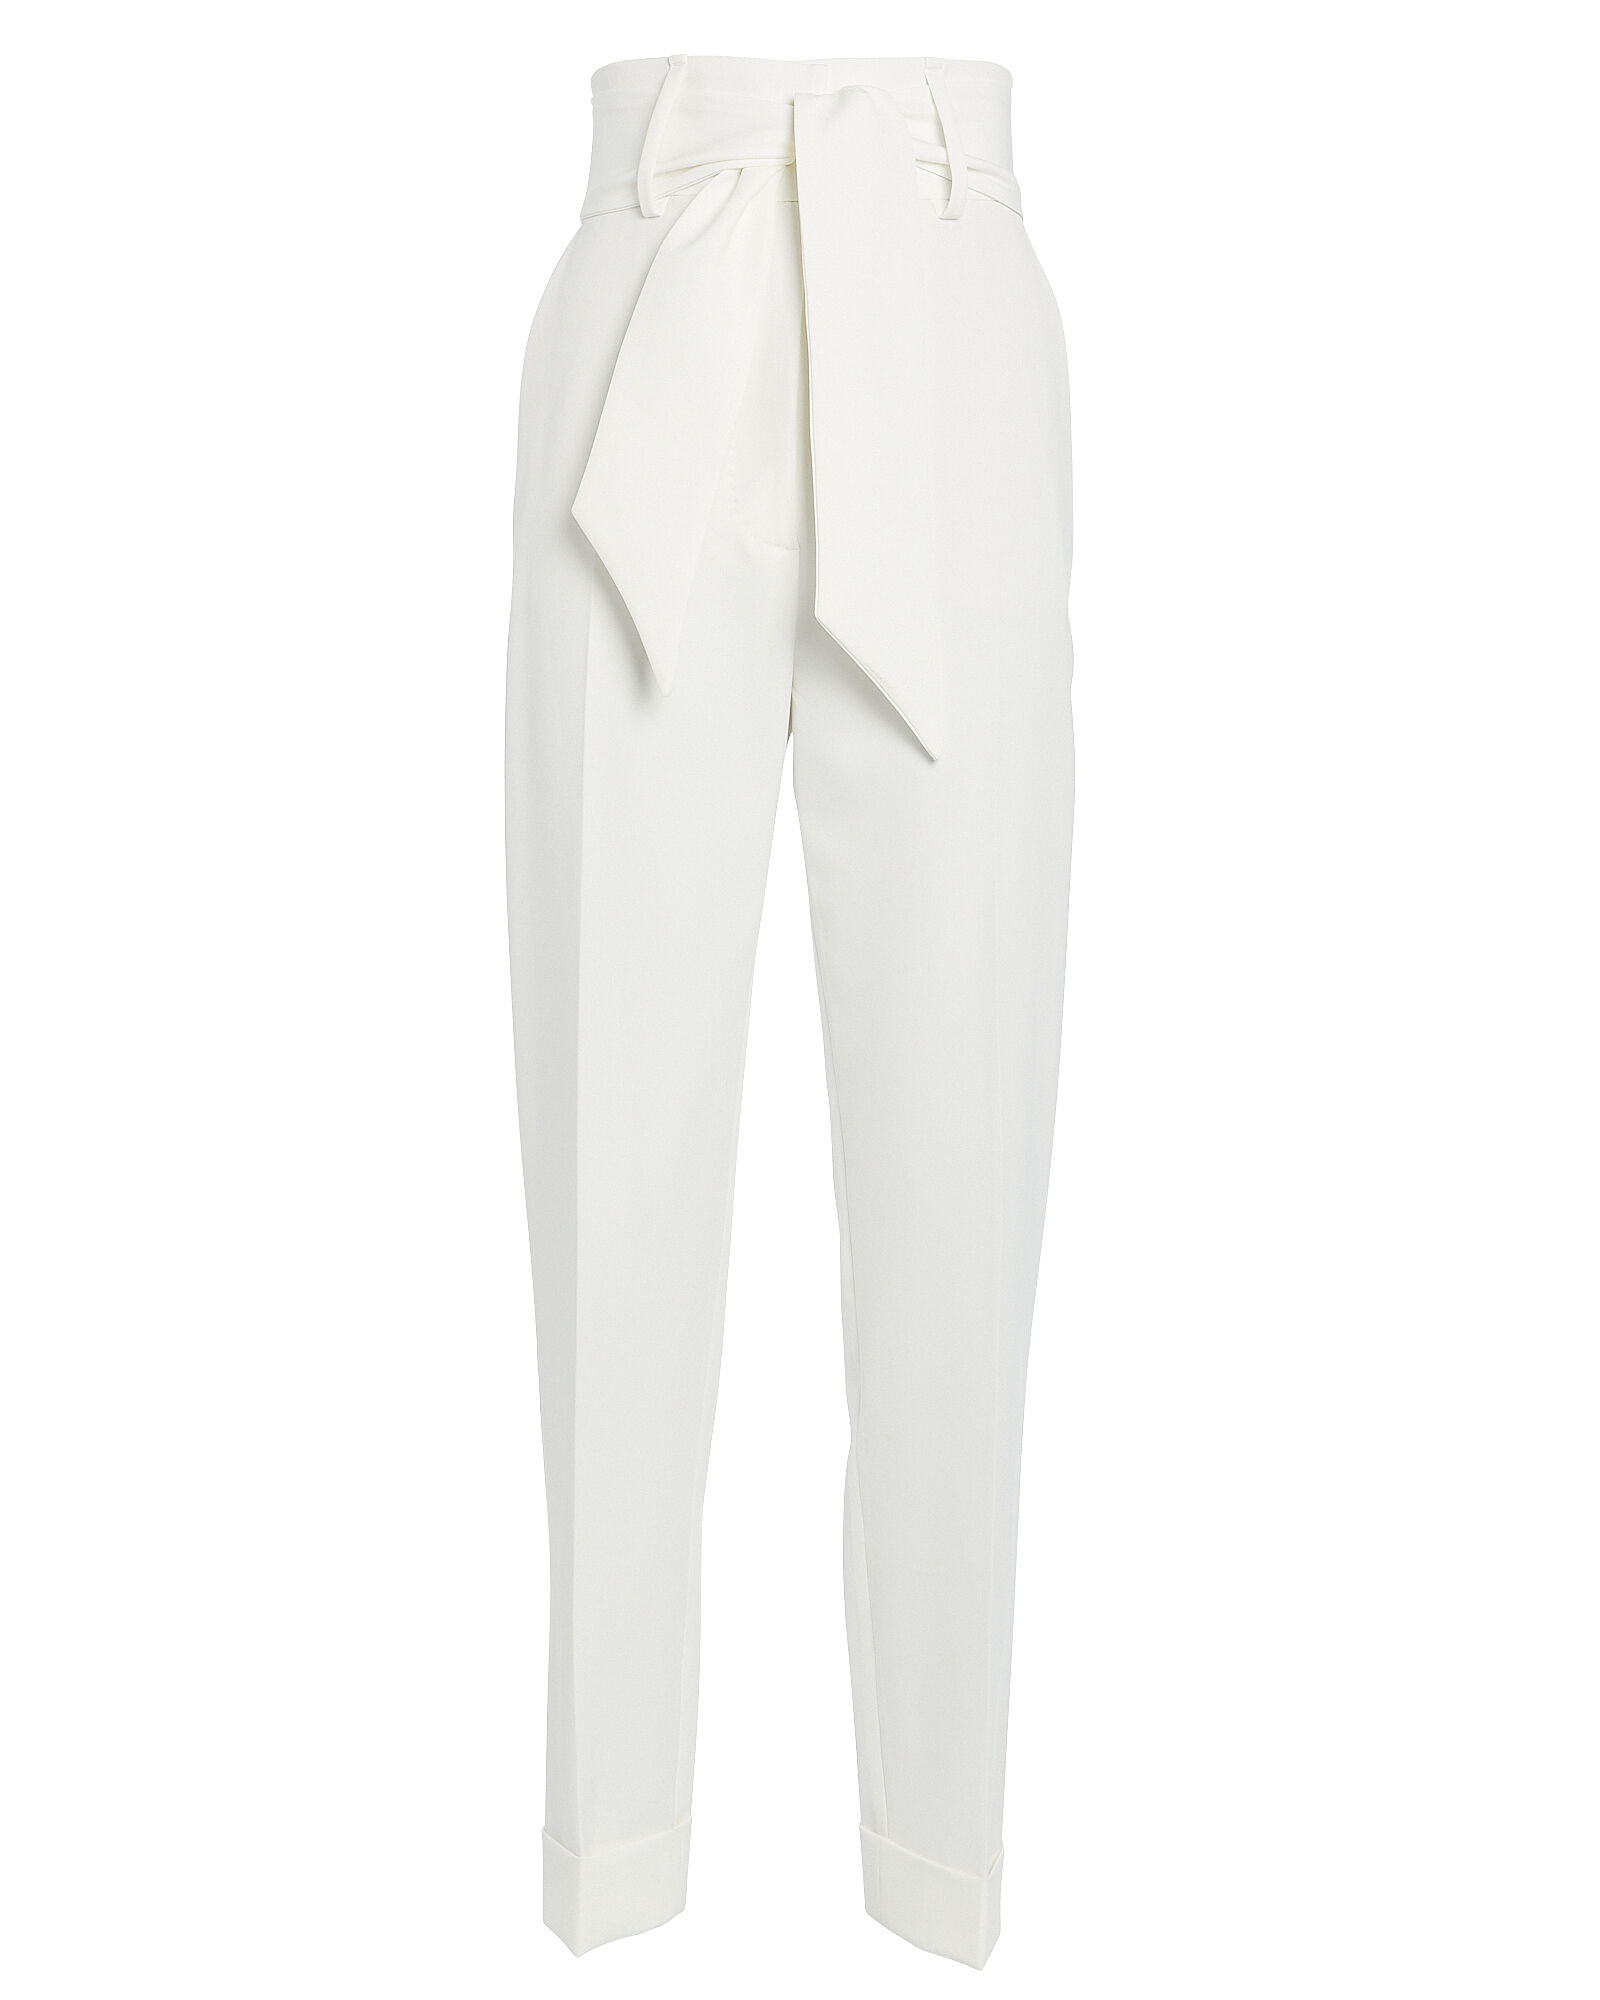 Belted High-Waist Crepe Pants, WHITE, hi-res